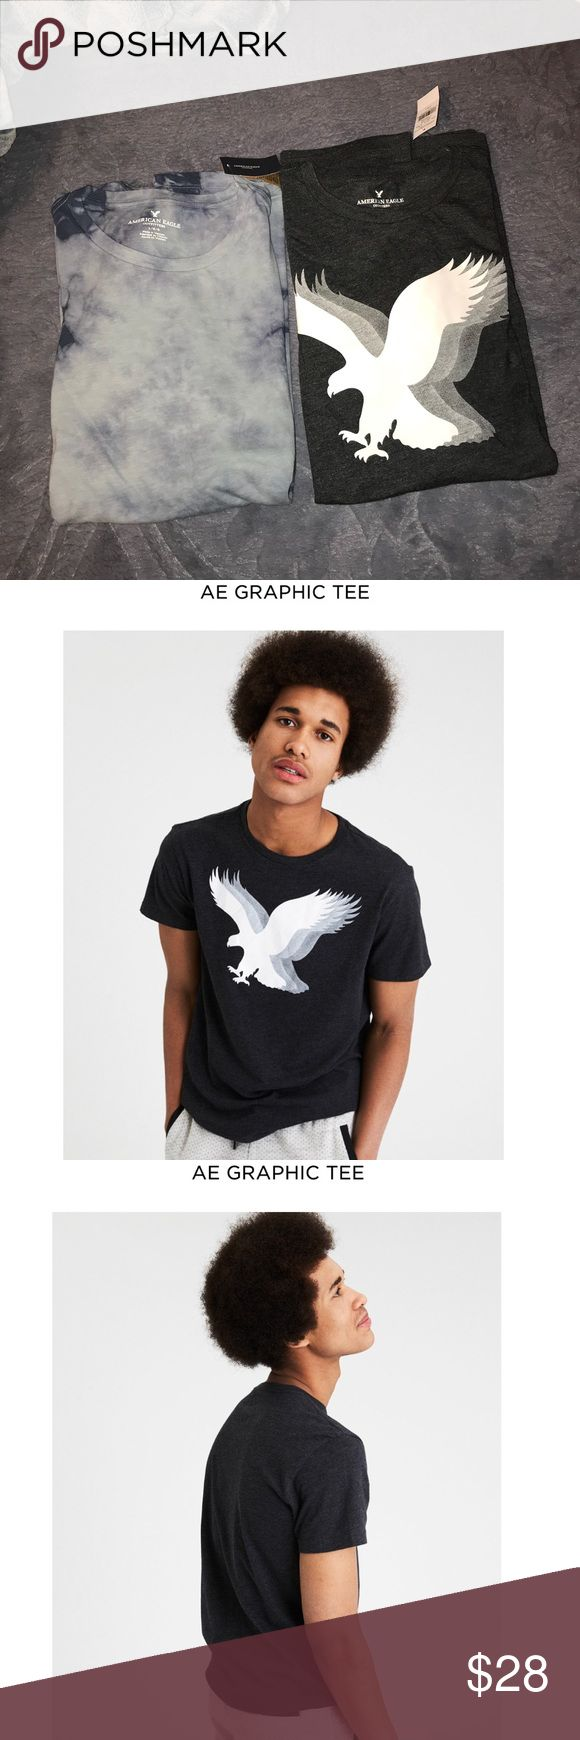 American Eagle Men Shirts Both size large Both brand new with tags Both retail for $25 American Eagle Outfitters Shirts Tees - Short Sleeve